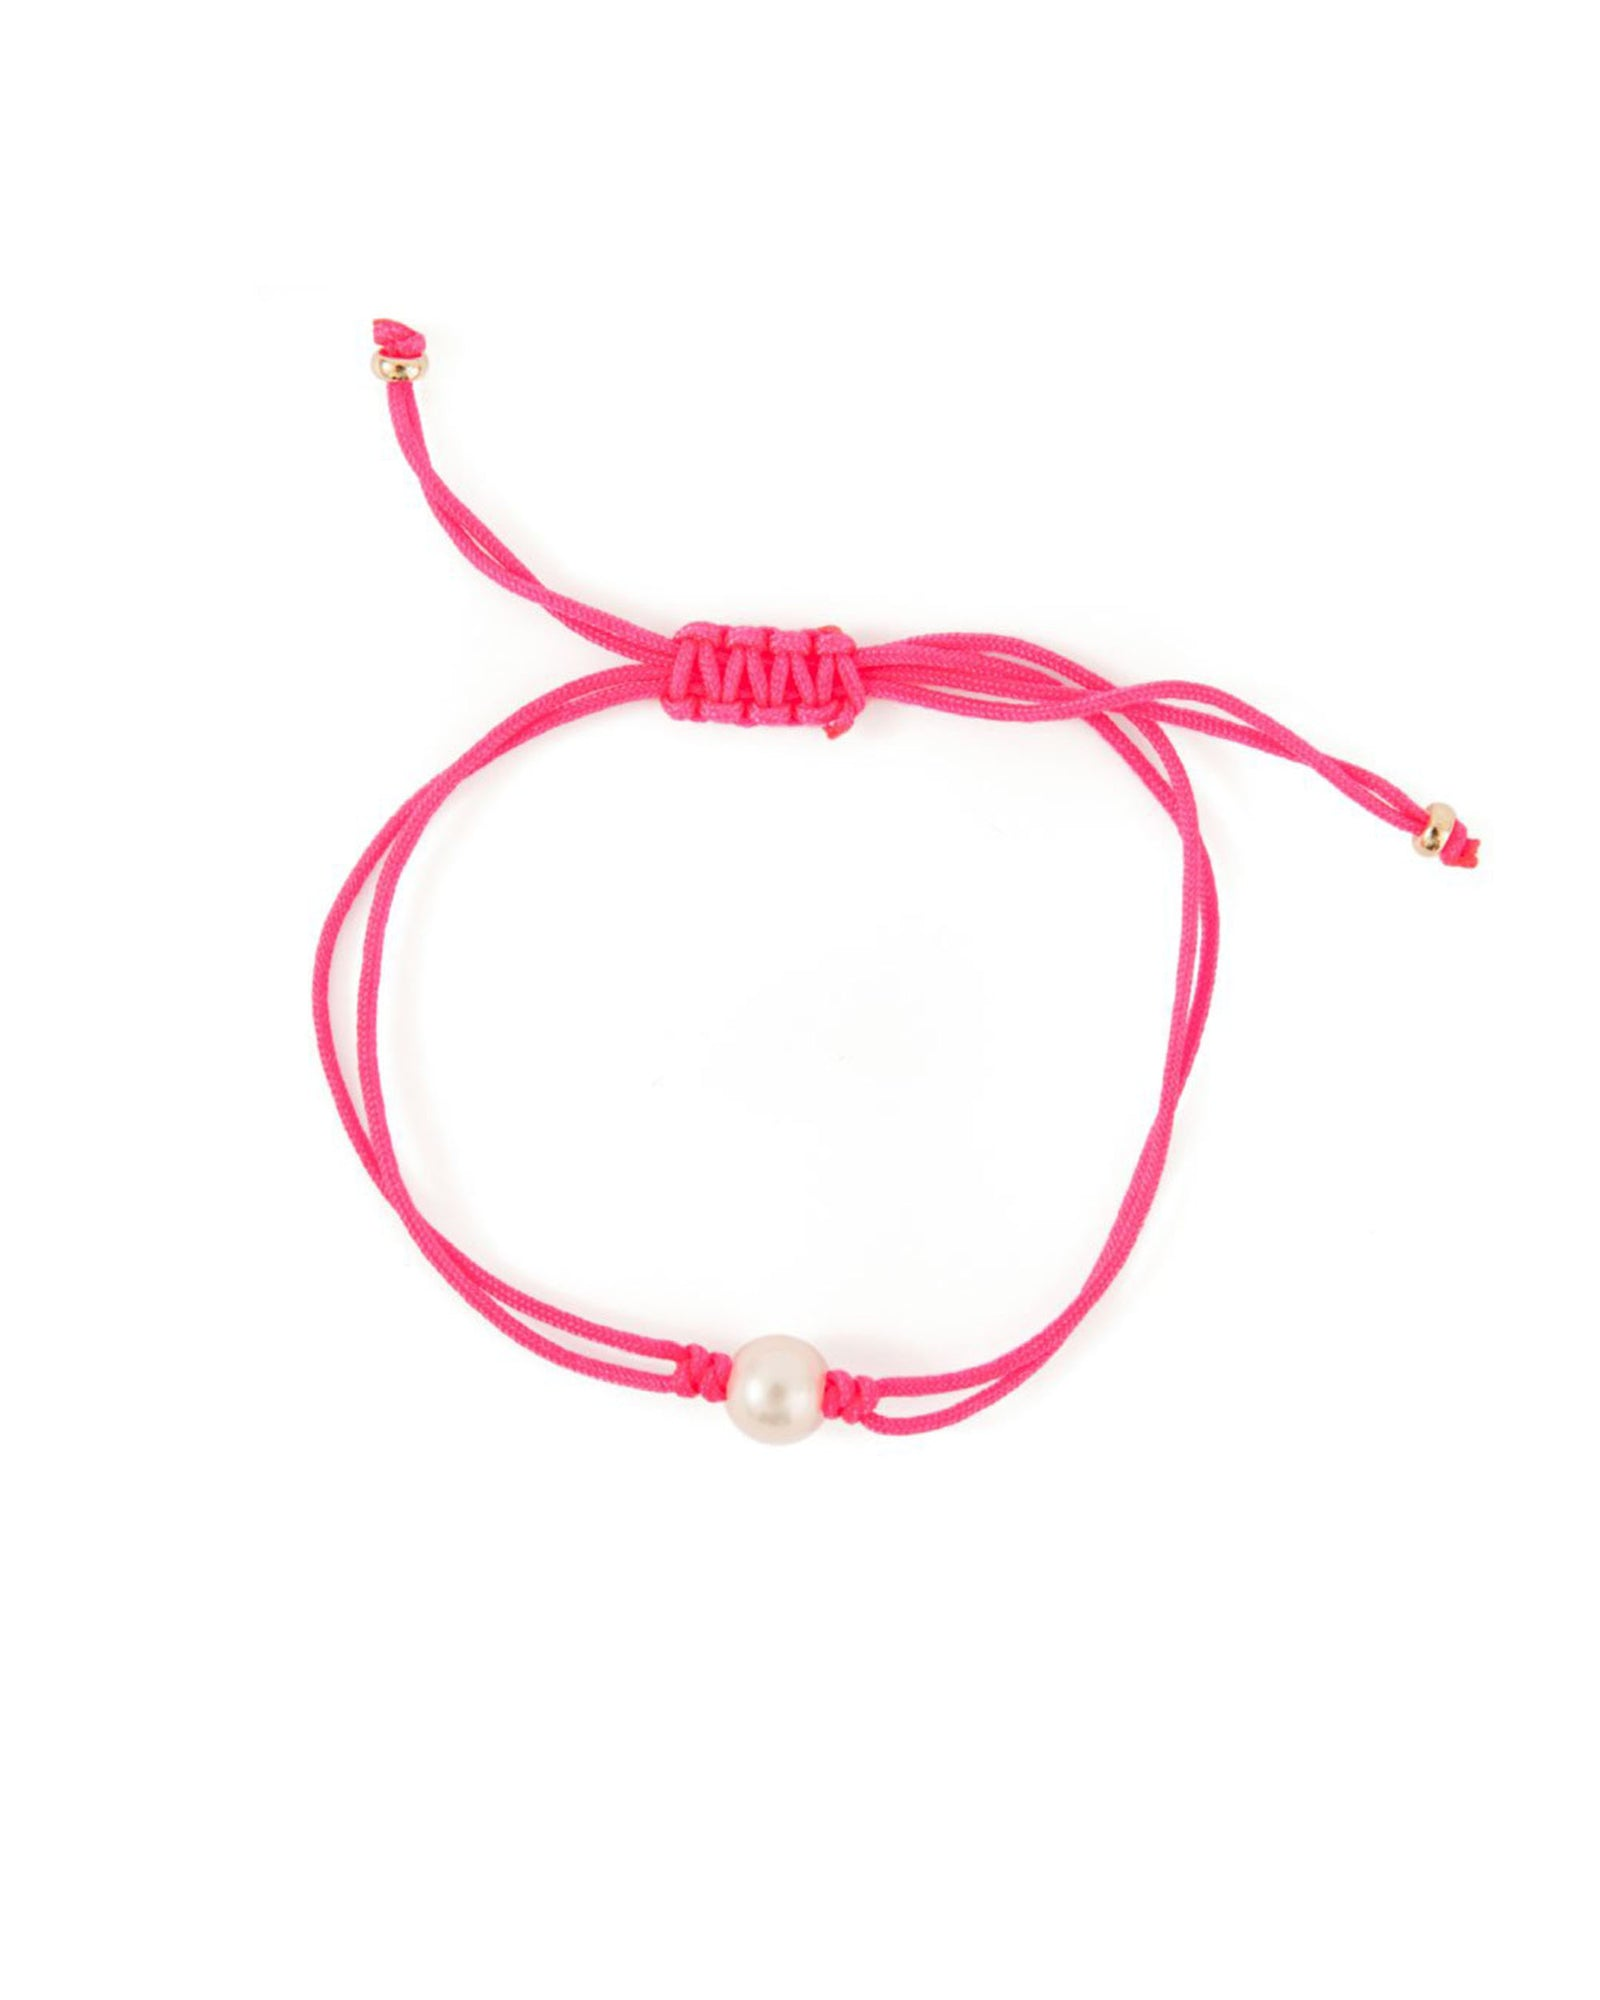 Grace Lee Pearl Silk Cord Bracelet in Neon Pink